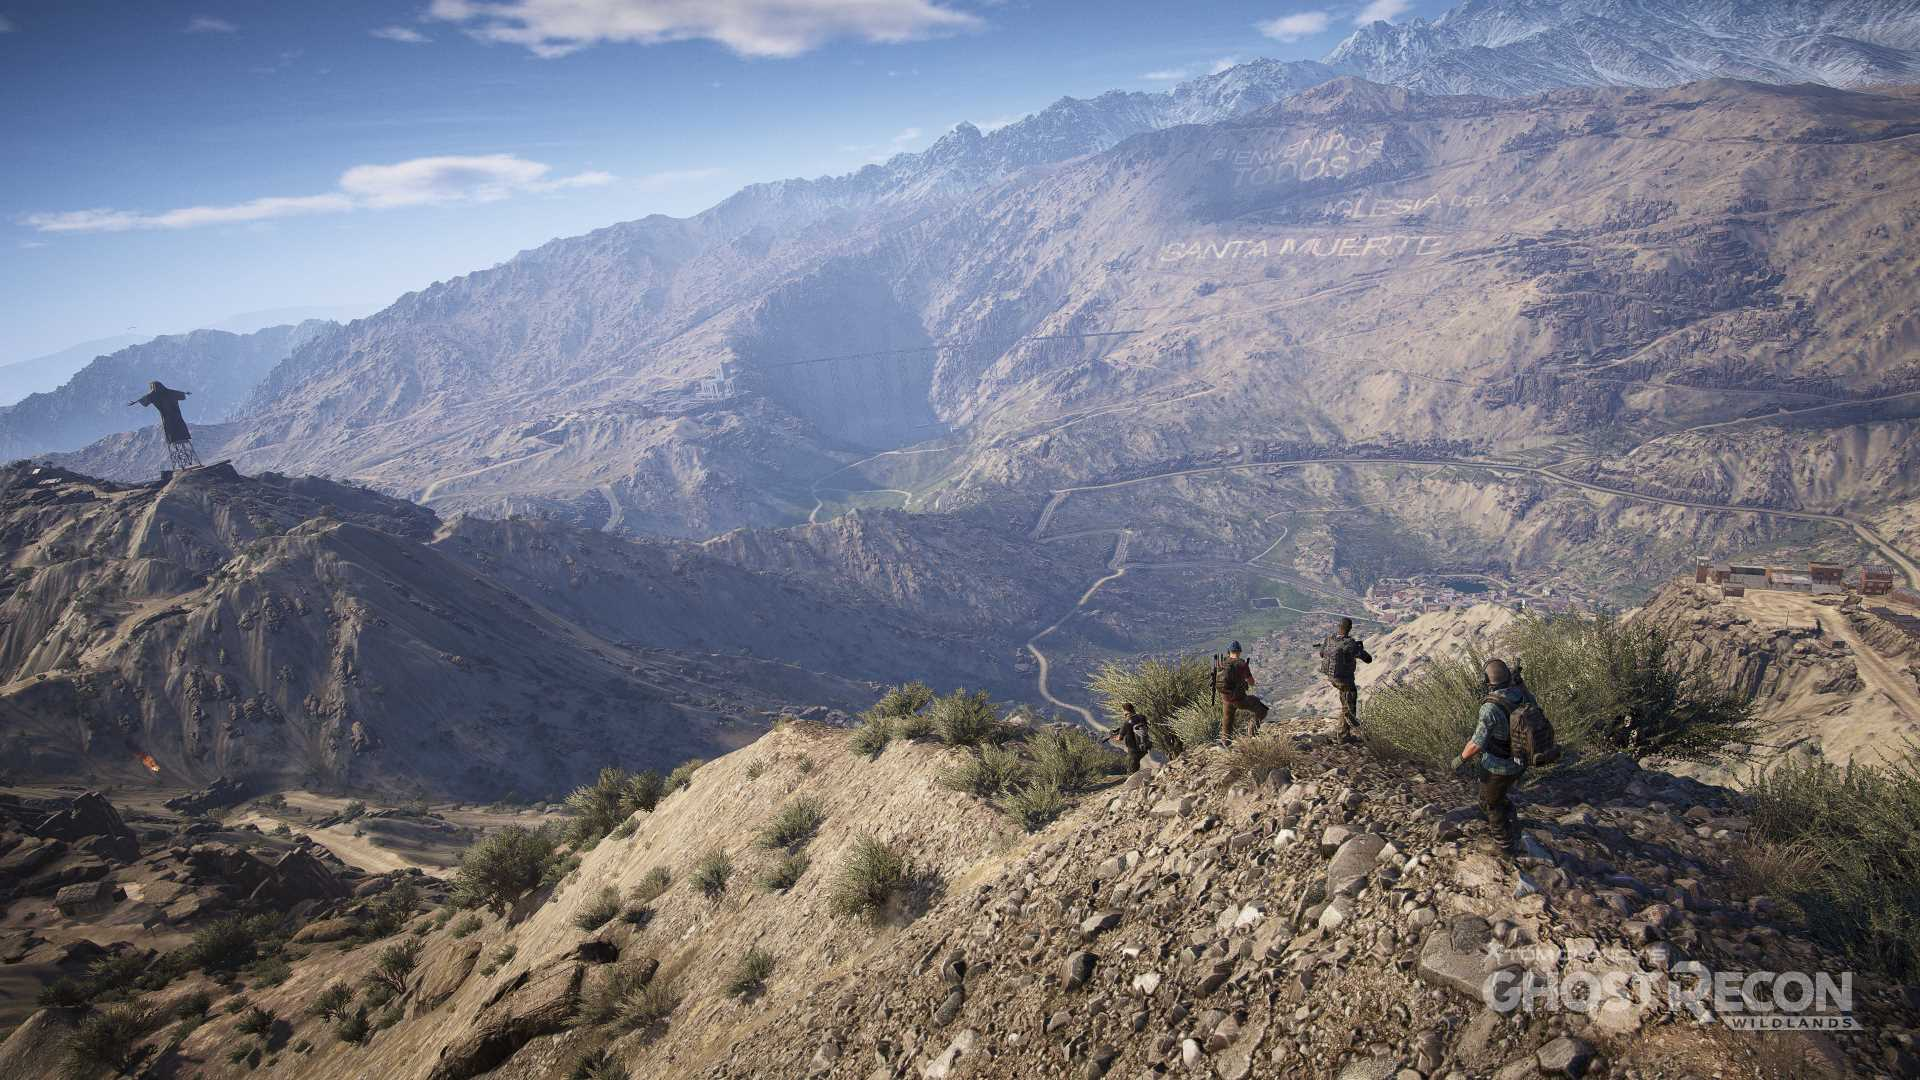 Wildlands mountains